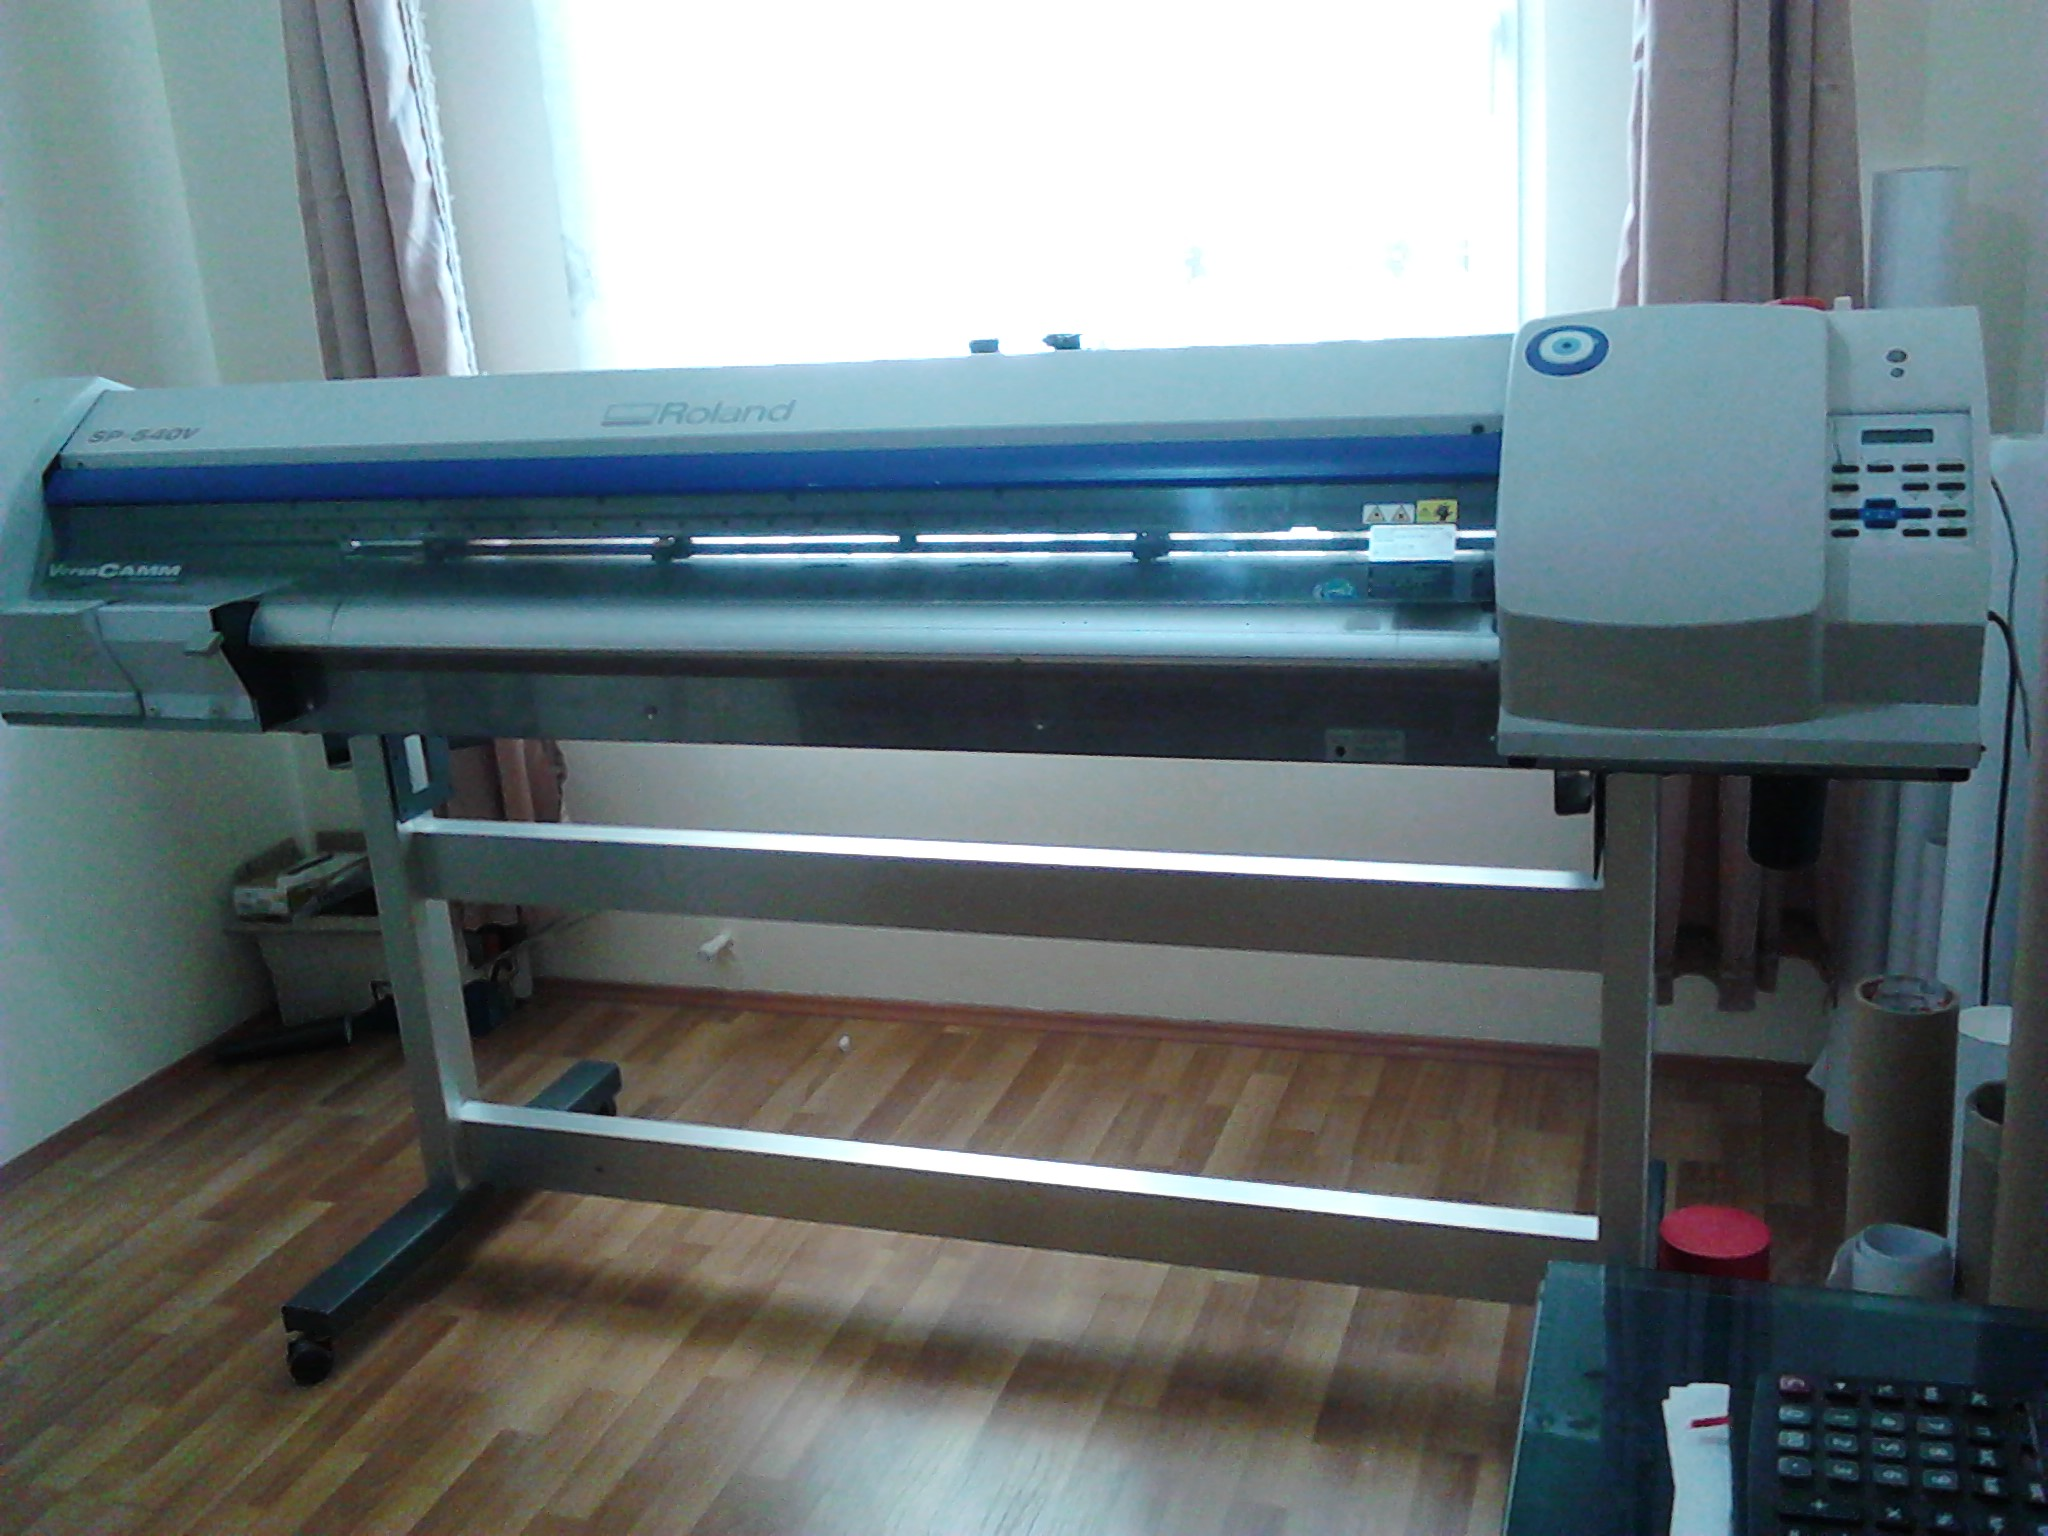 rol baskes SP540V bask� makinas�